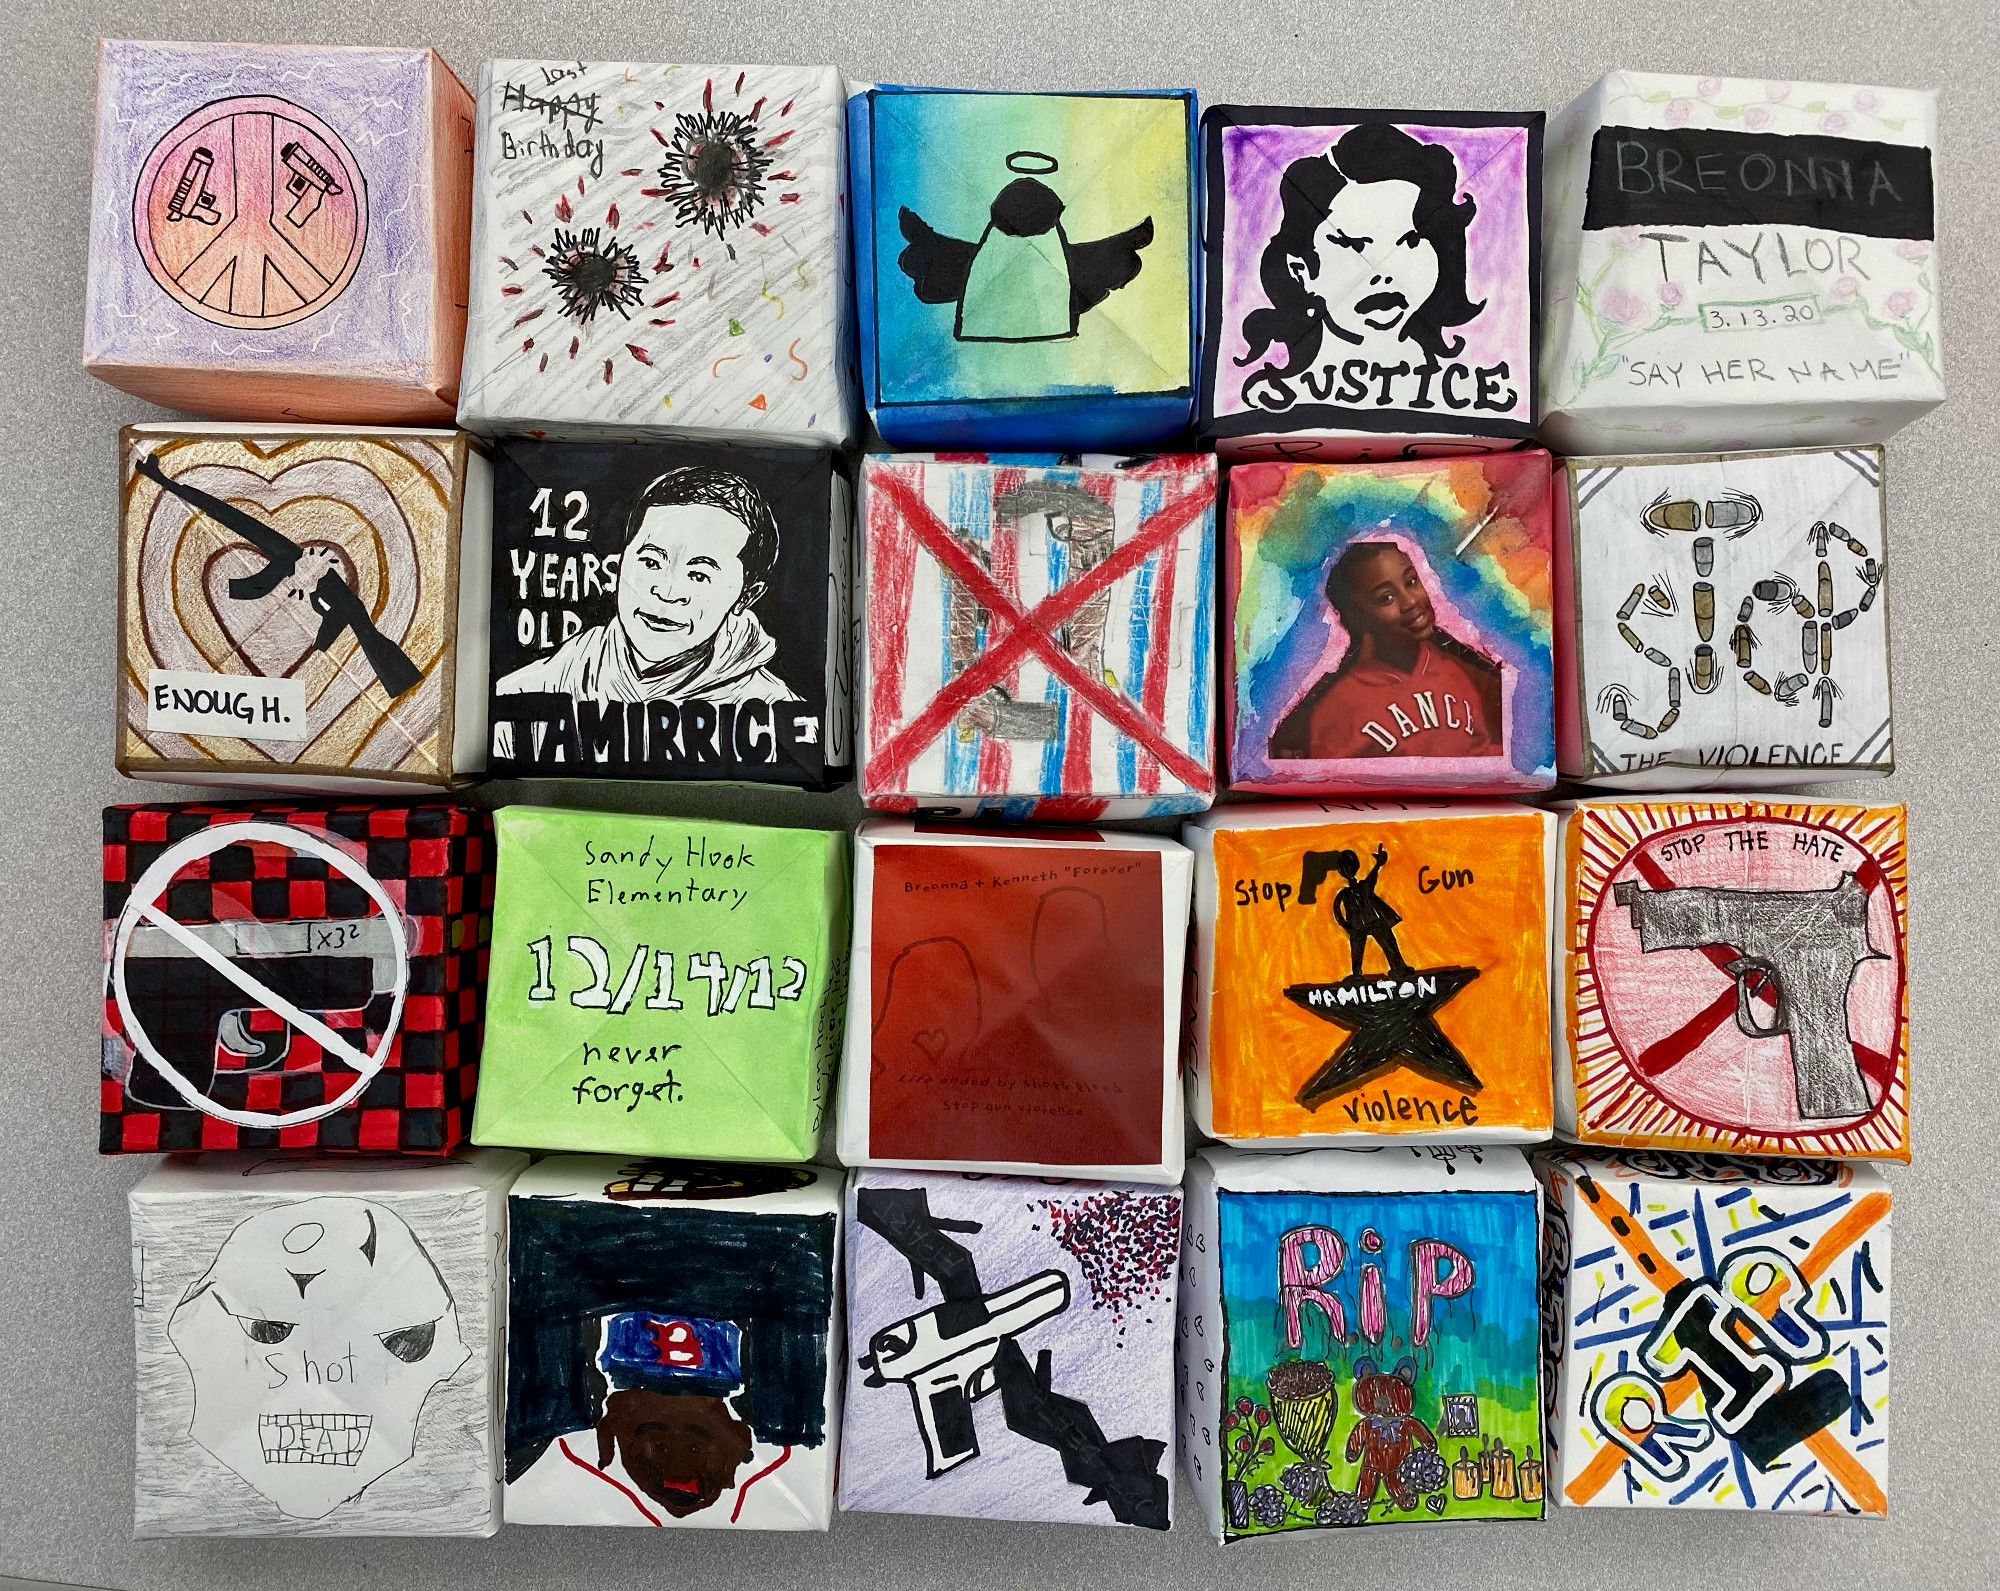 Boxes created by Bronx New York students